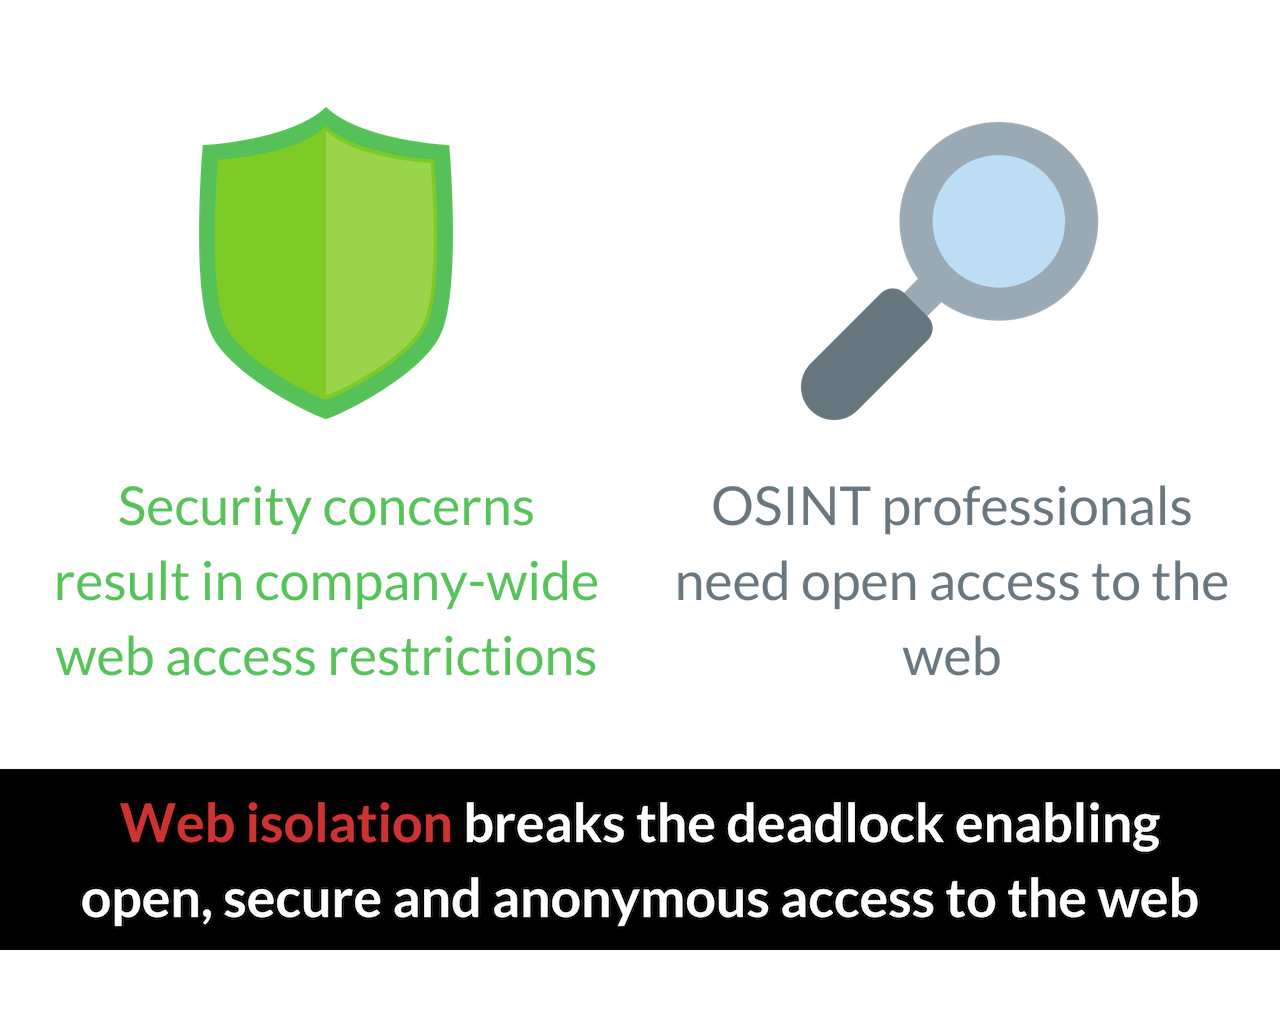 The conflict between IT security and OSINT